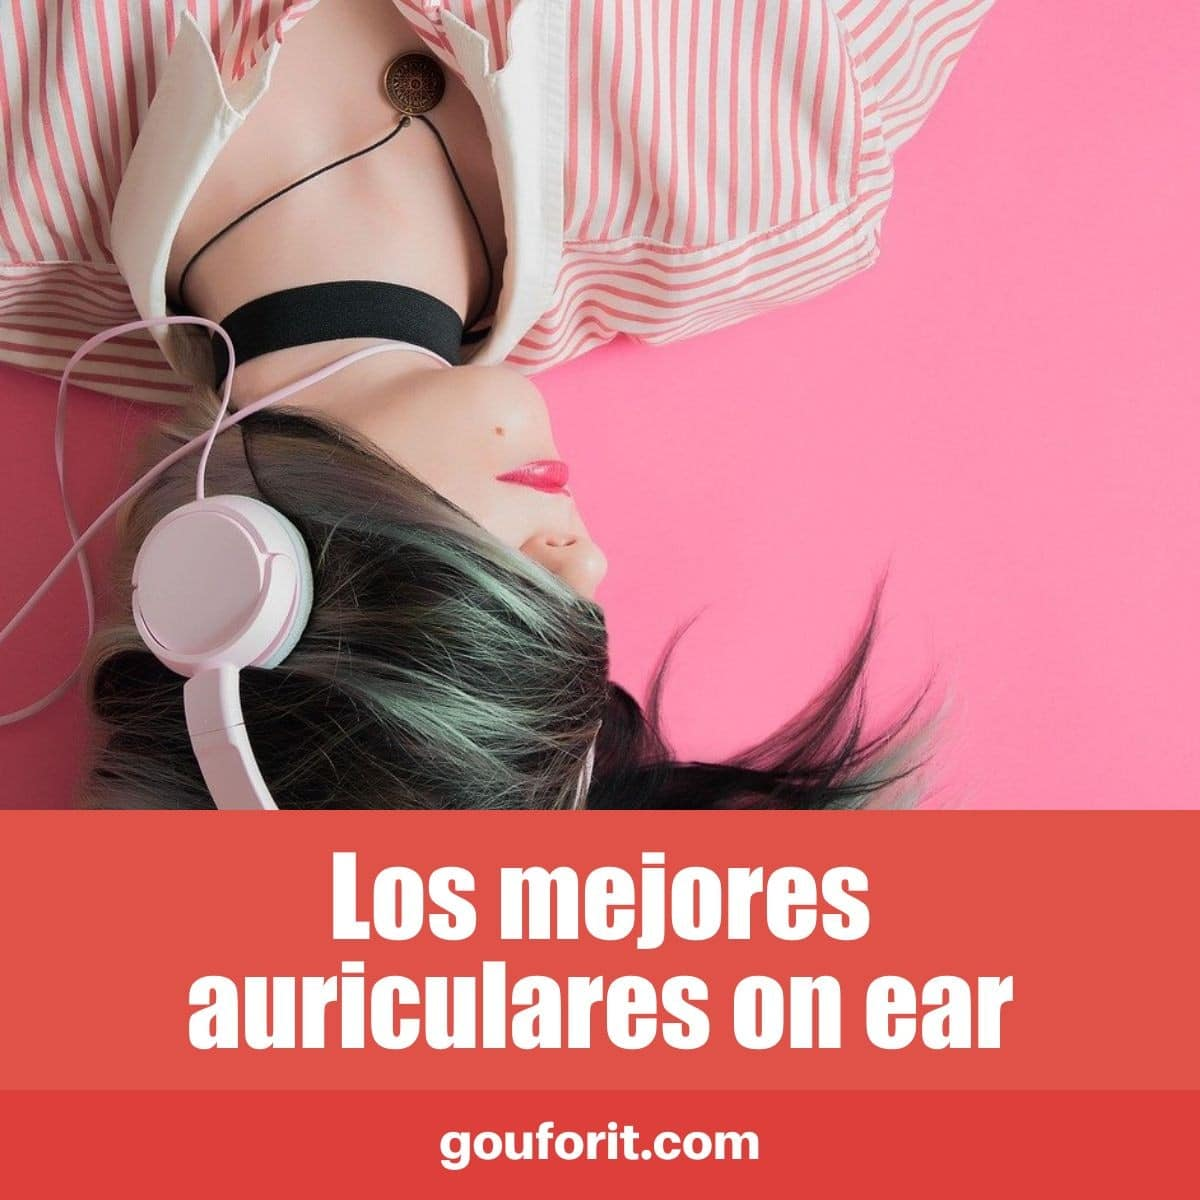 Los mejores auriculares on ear